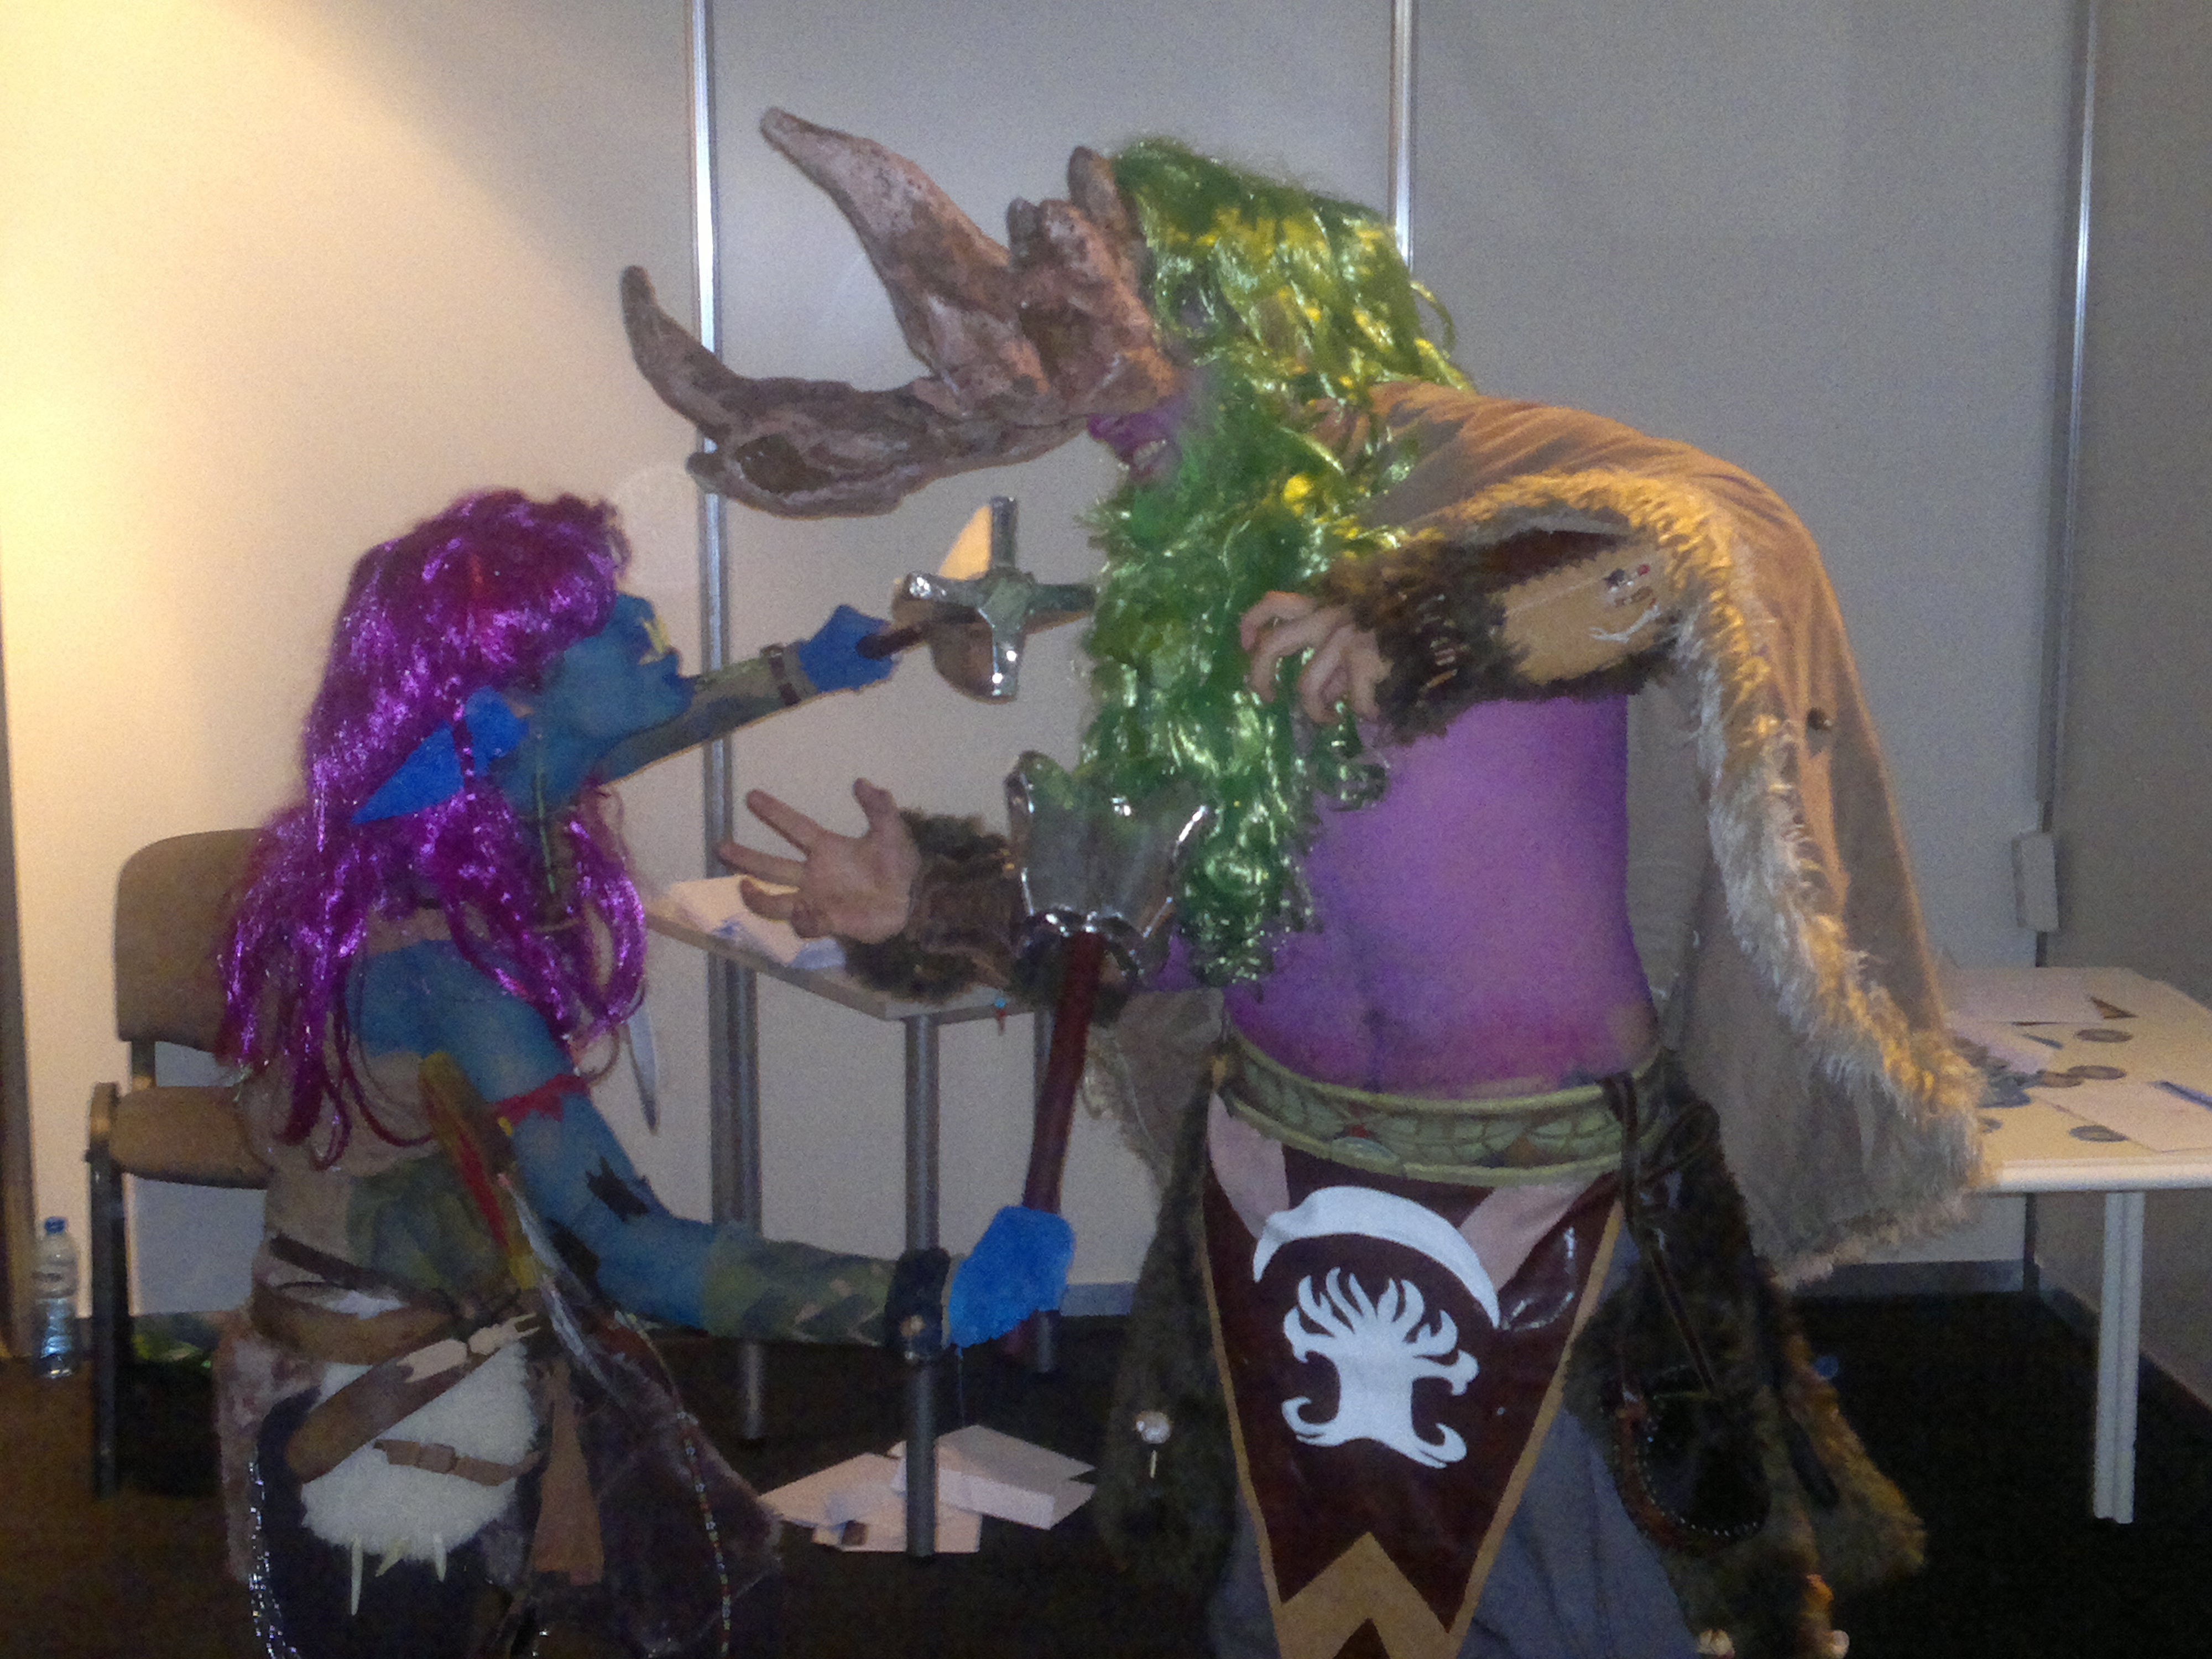 Shaman vs Storm rage cosplay by TheW0lfen on DeviantArt